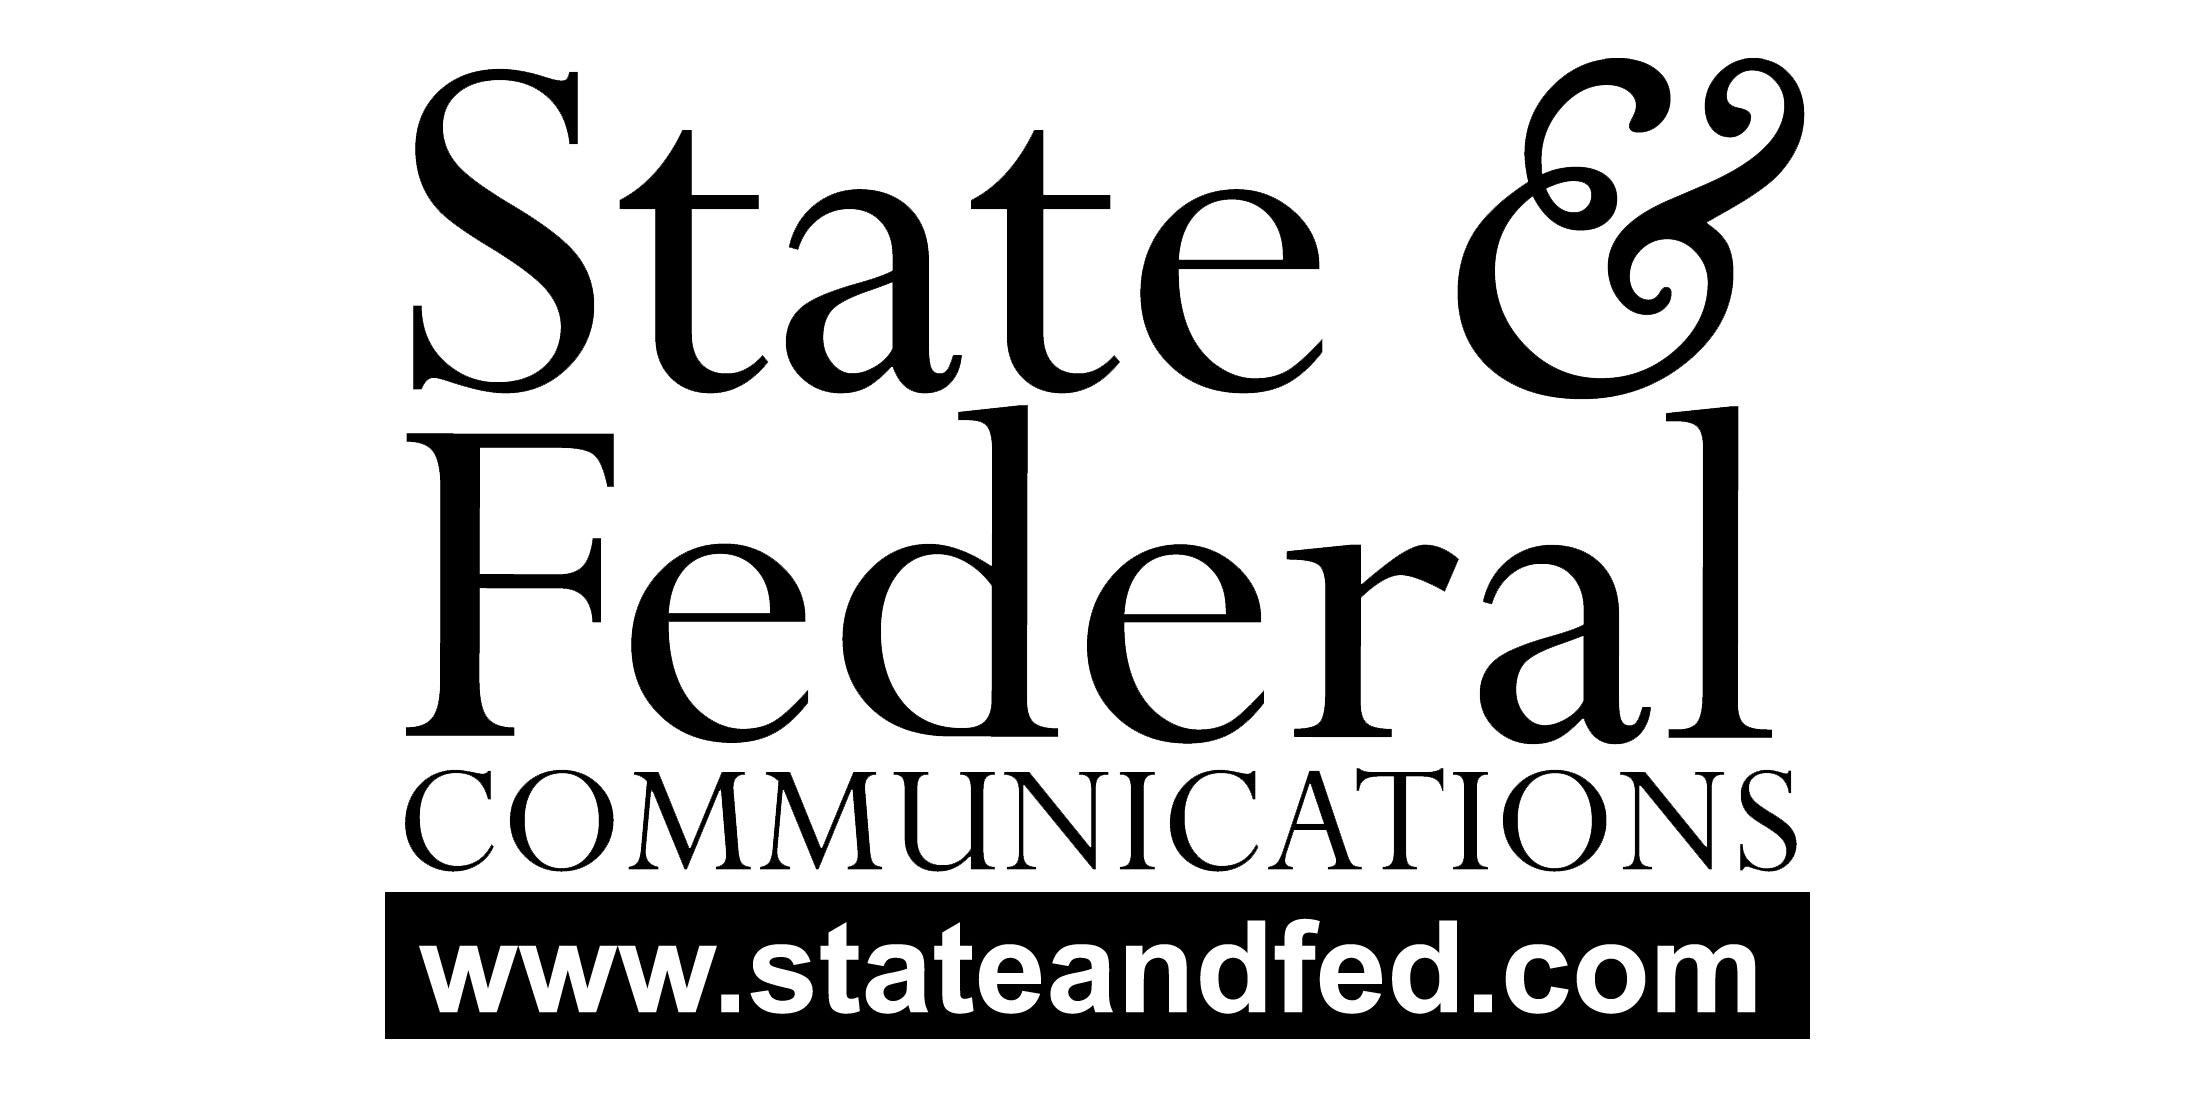 State and Federal